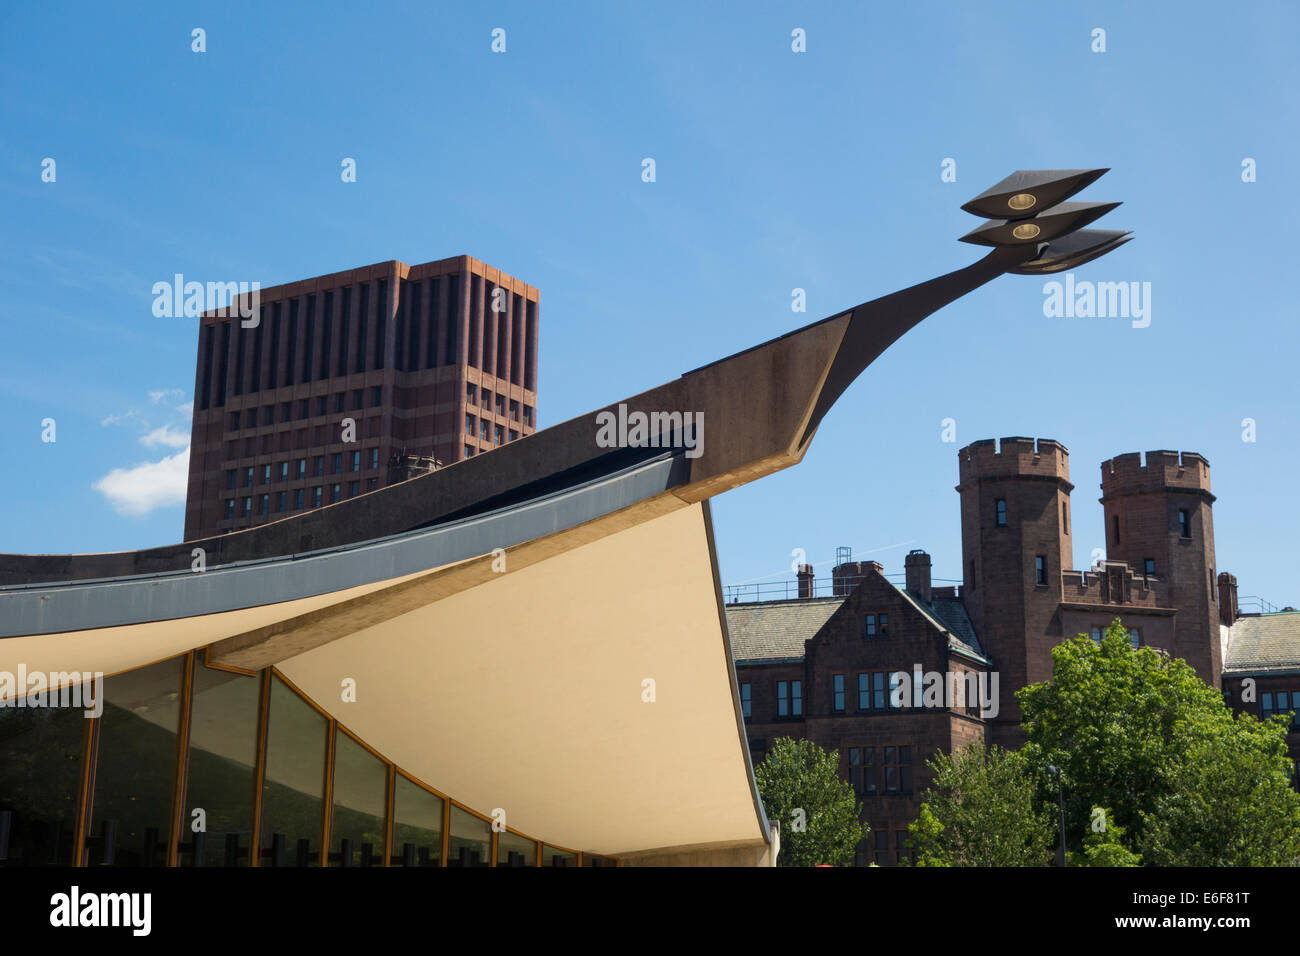 David S Ingalls Rink Yale New Haven CT - Stock Image